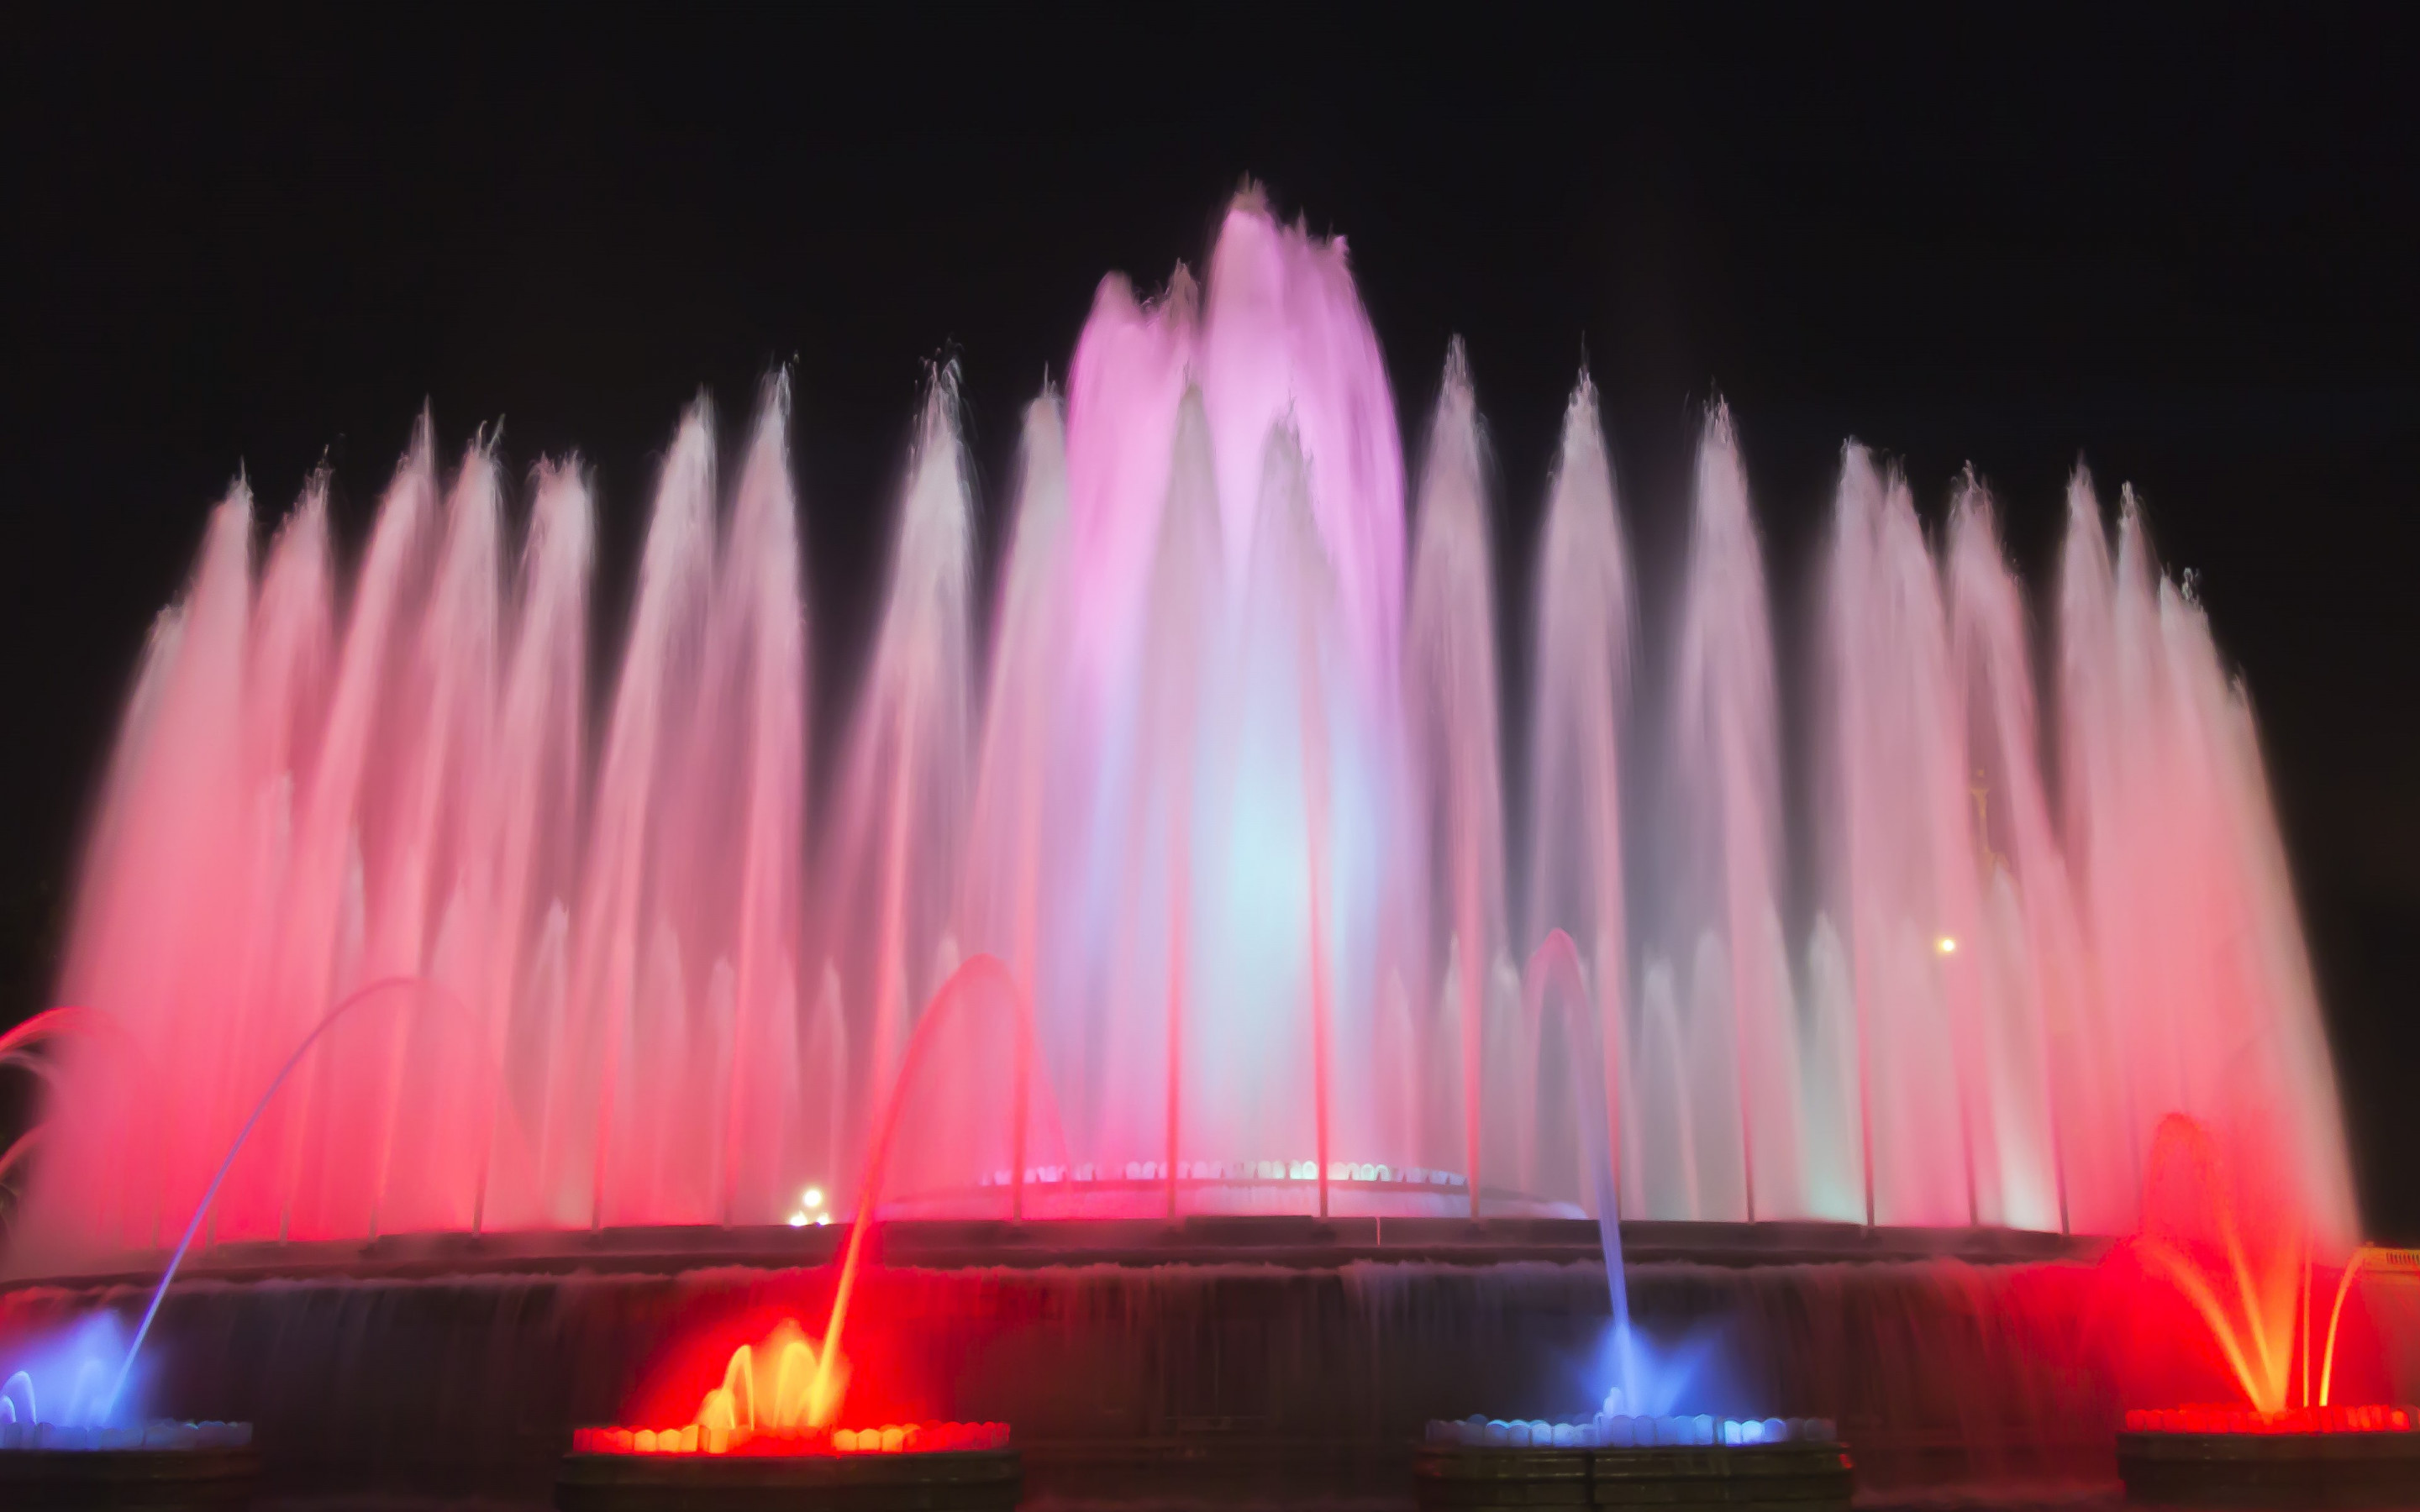 Fountains in Barcelona wallpaper 2880x1800